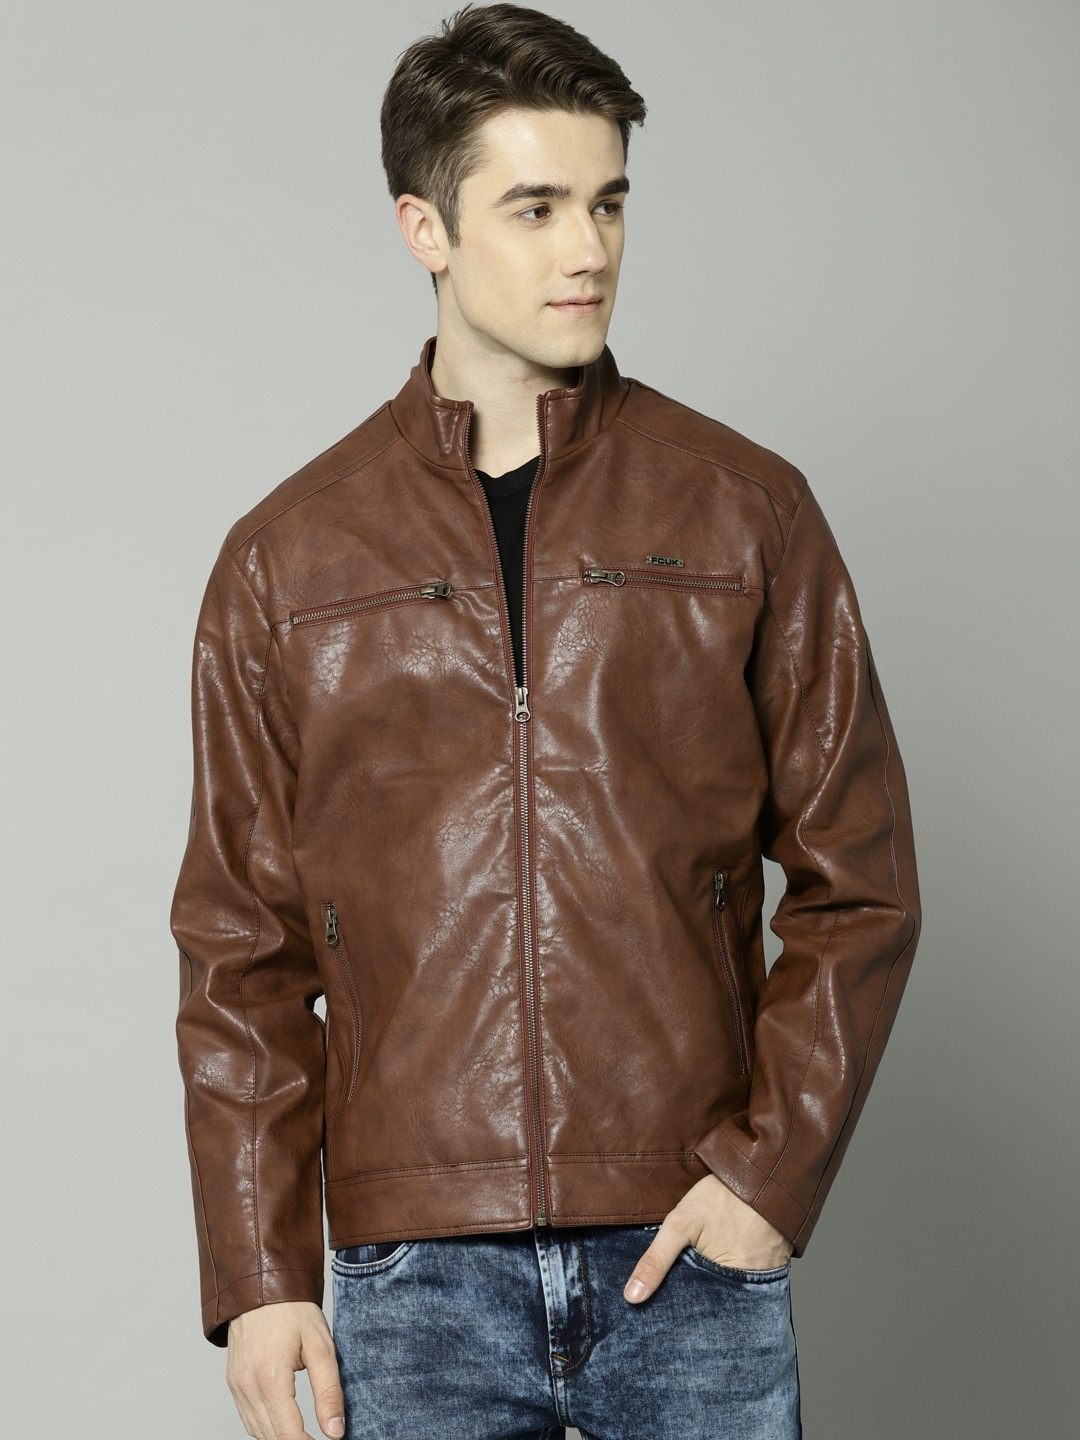 62adb23c74a Brown Leather Jacket - Buy Brown Leather Jacket online in India